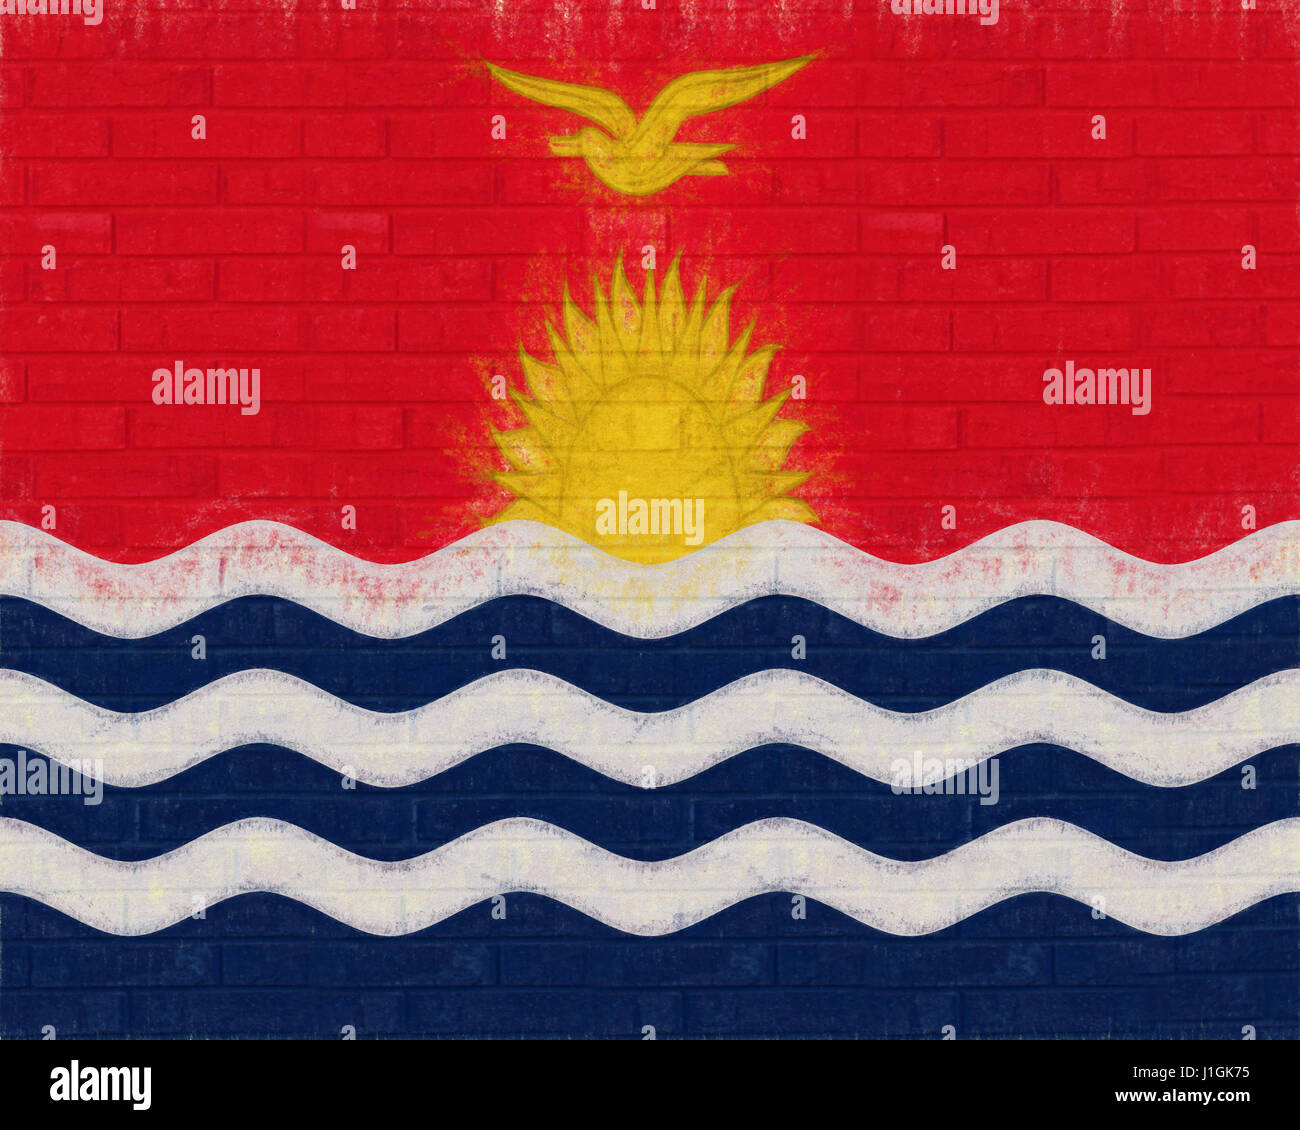 Illustration of the flag of Kiribati looking like it has been painted onto a wall - Stock Image